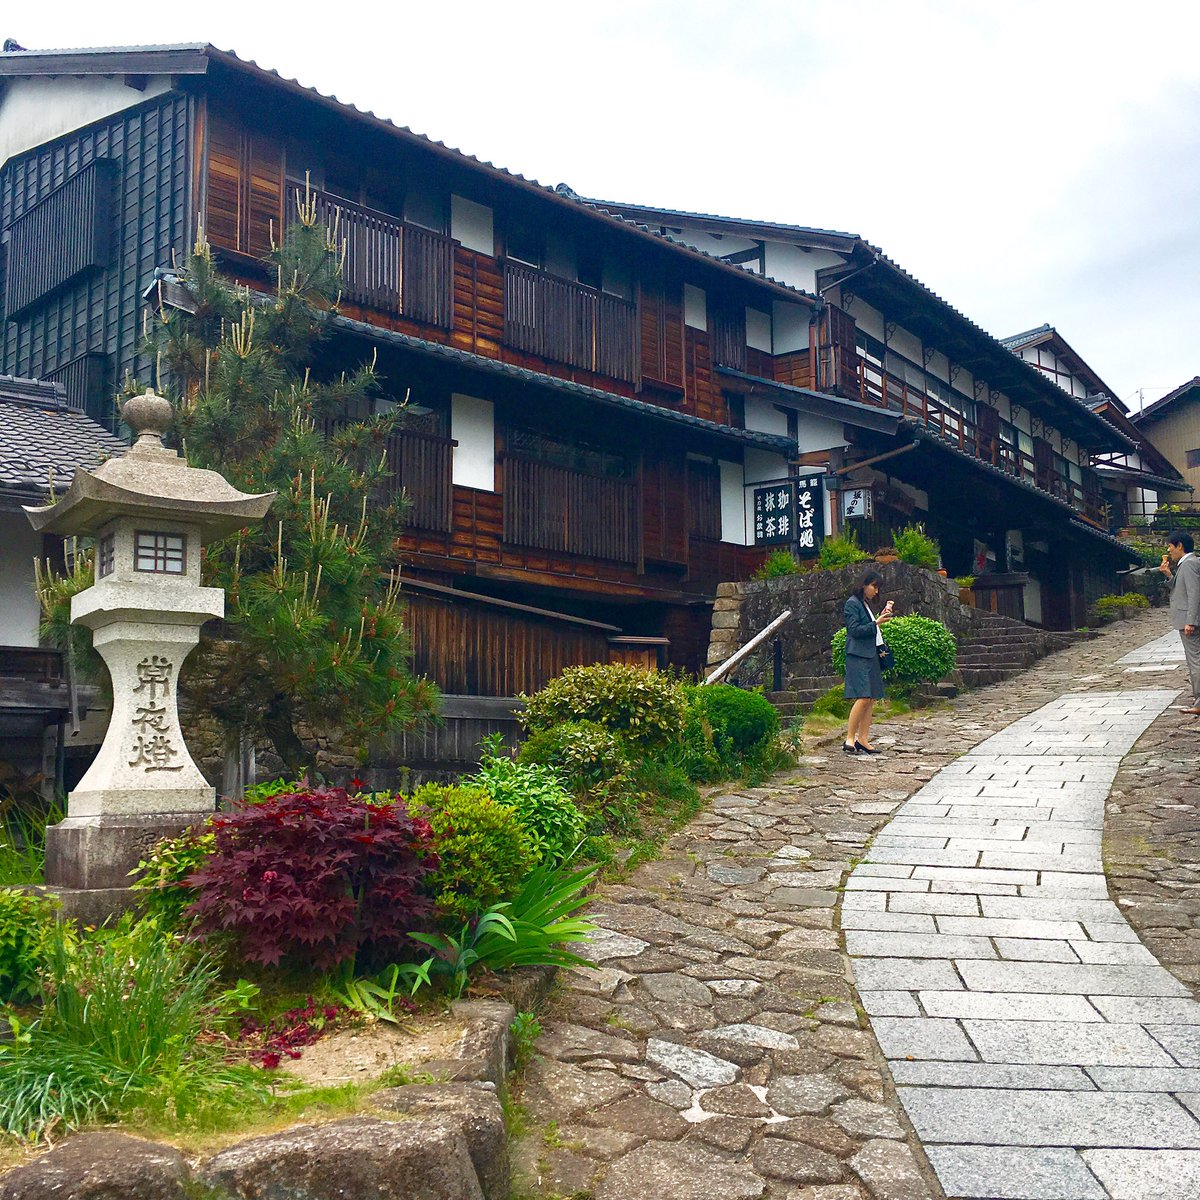 Forgotten ancient town of #Magome (#馬籠) is another must-visit place in #Chubu #Central #Japan. #travel #tourism #Asia #Nagoya #Gifu #Tsumagopic.twitter.com/I0vnn54j3M